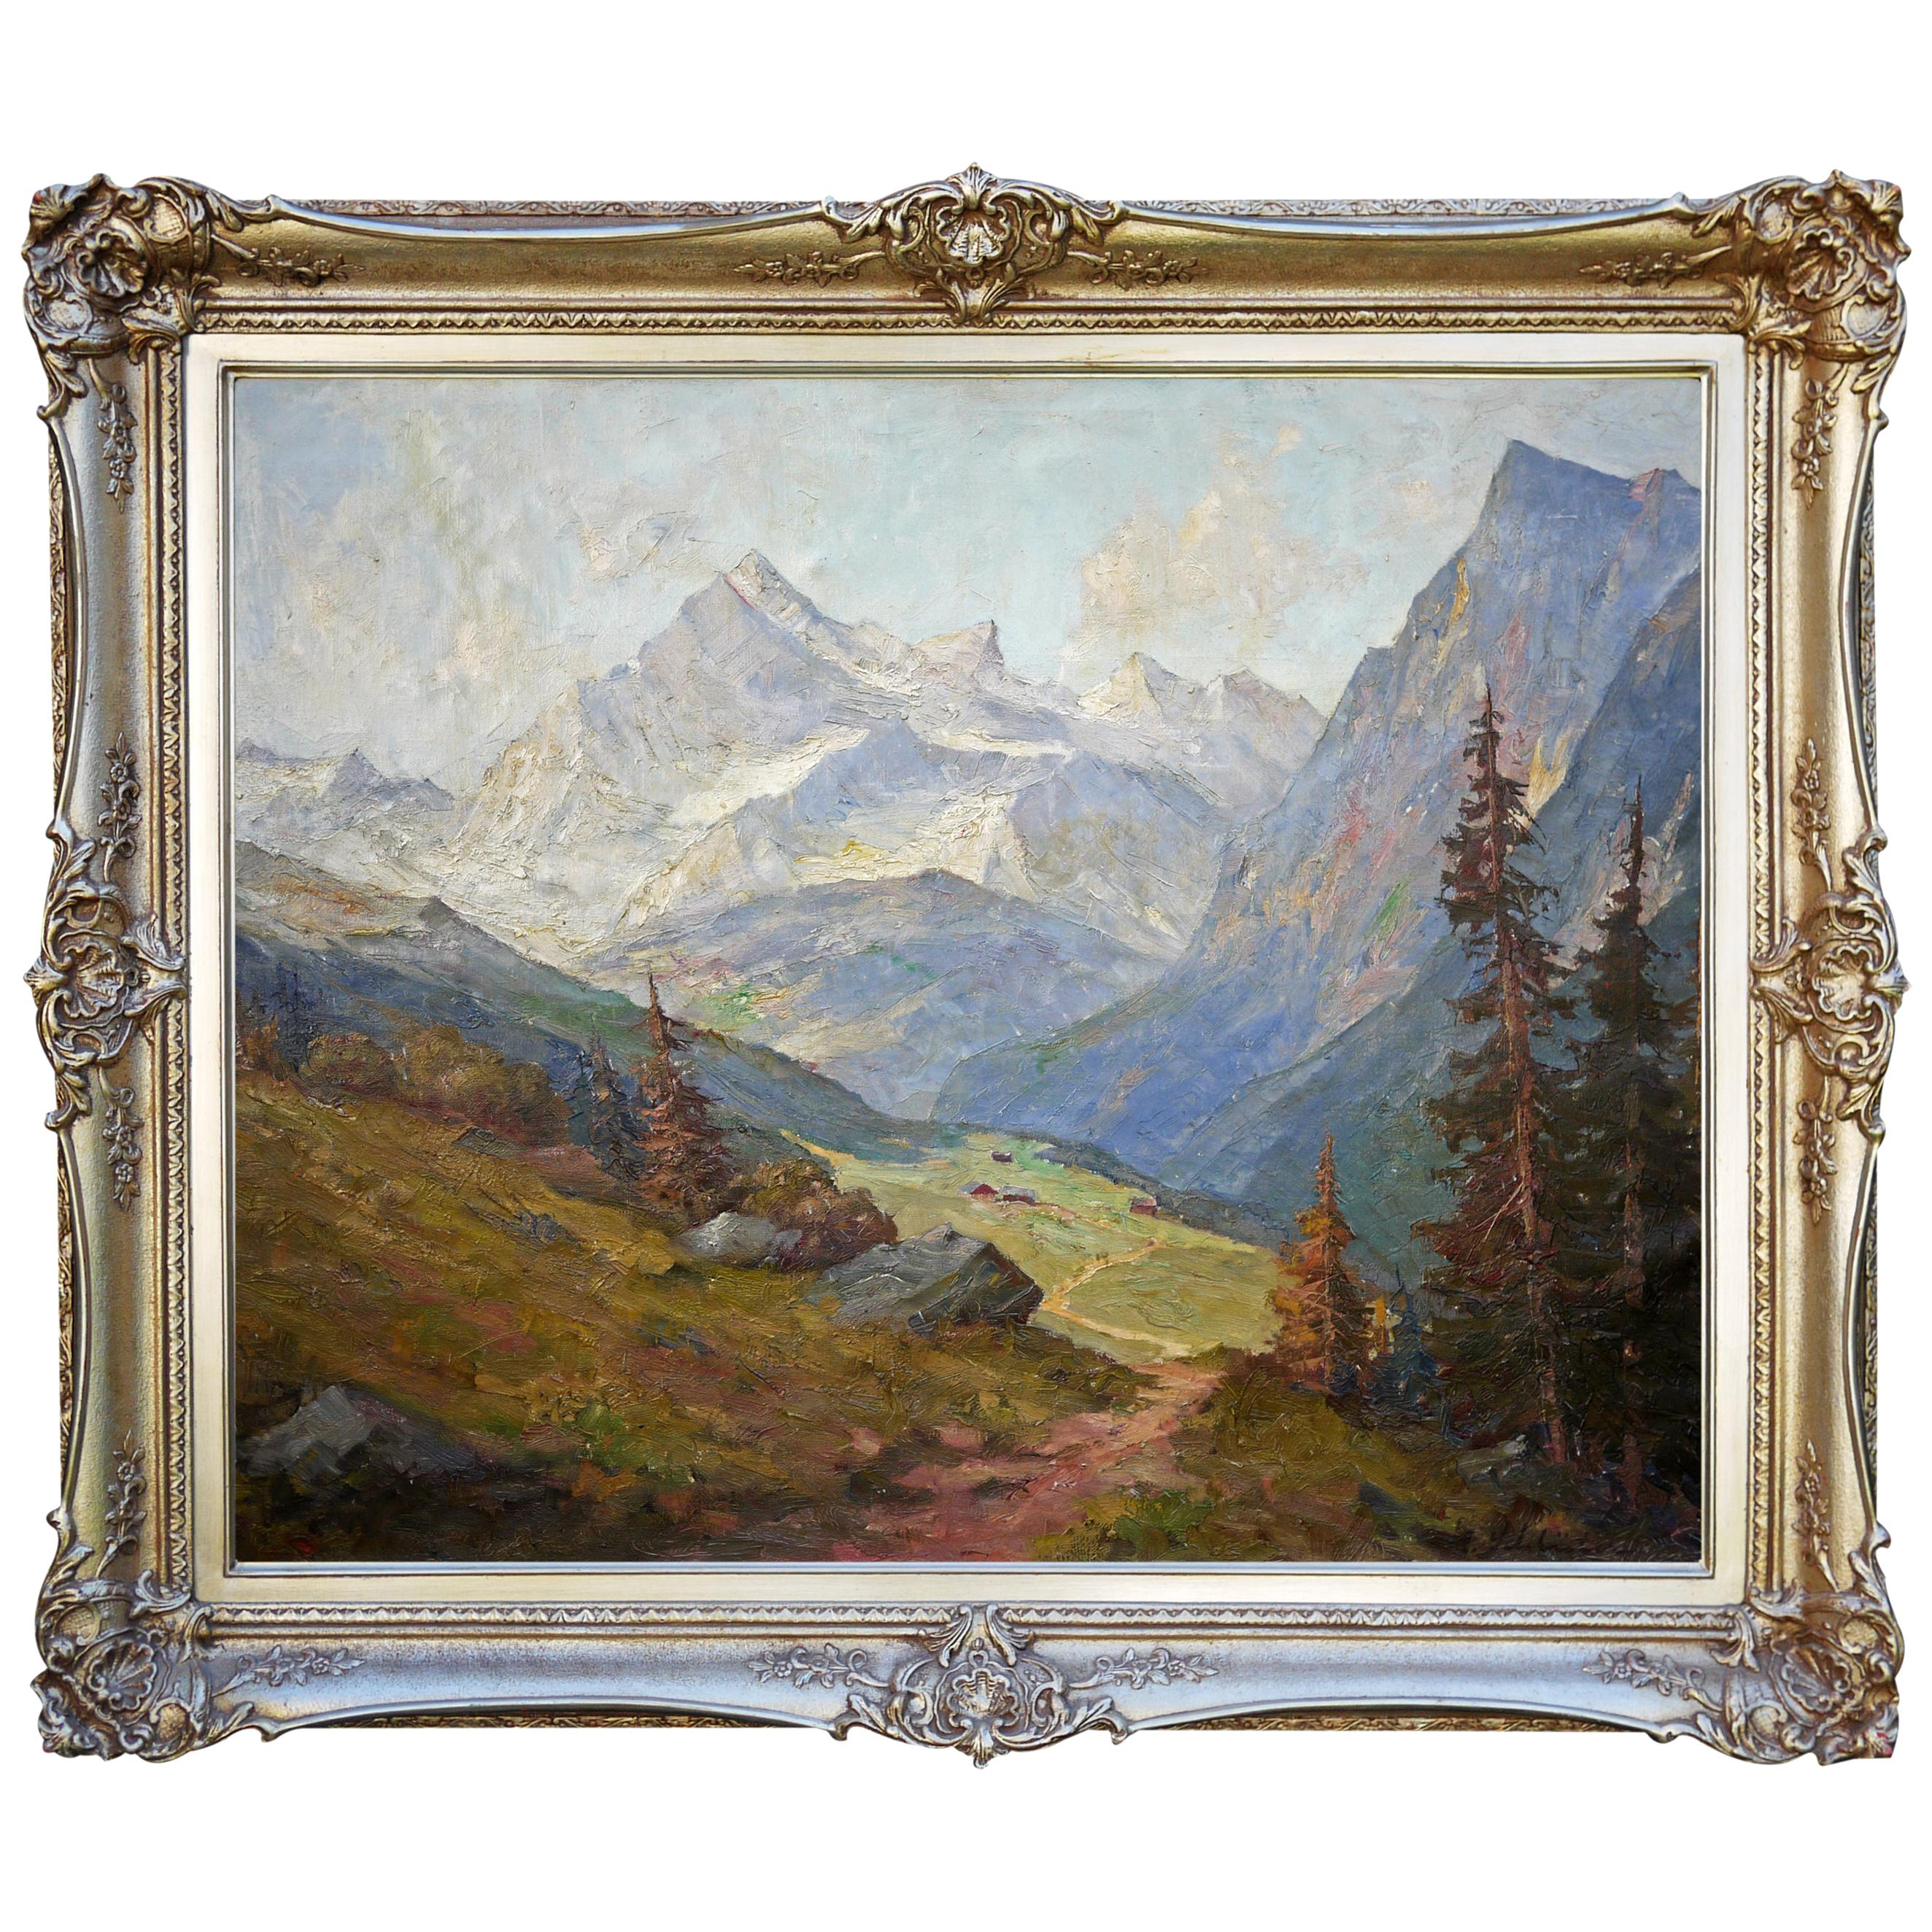 Mountain Landscape Painting, Oil on Canvas, 1950s